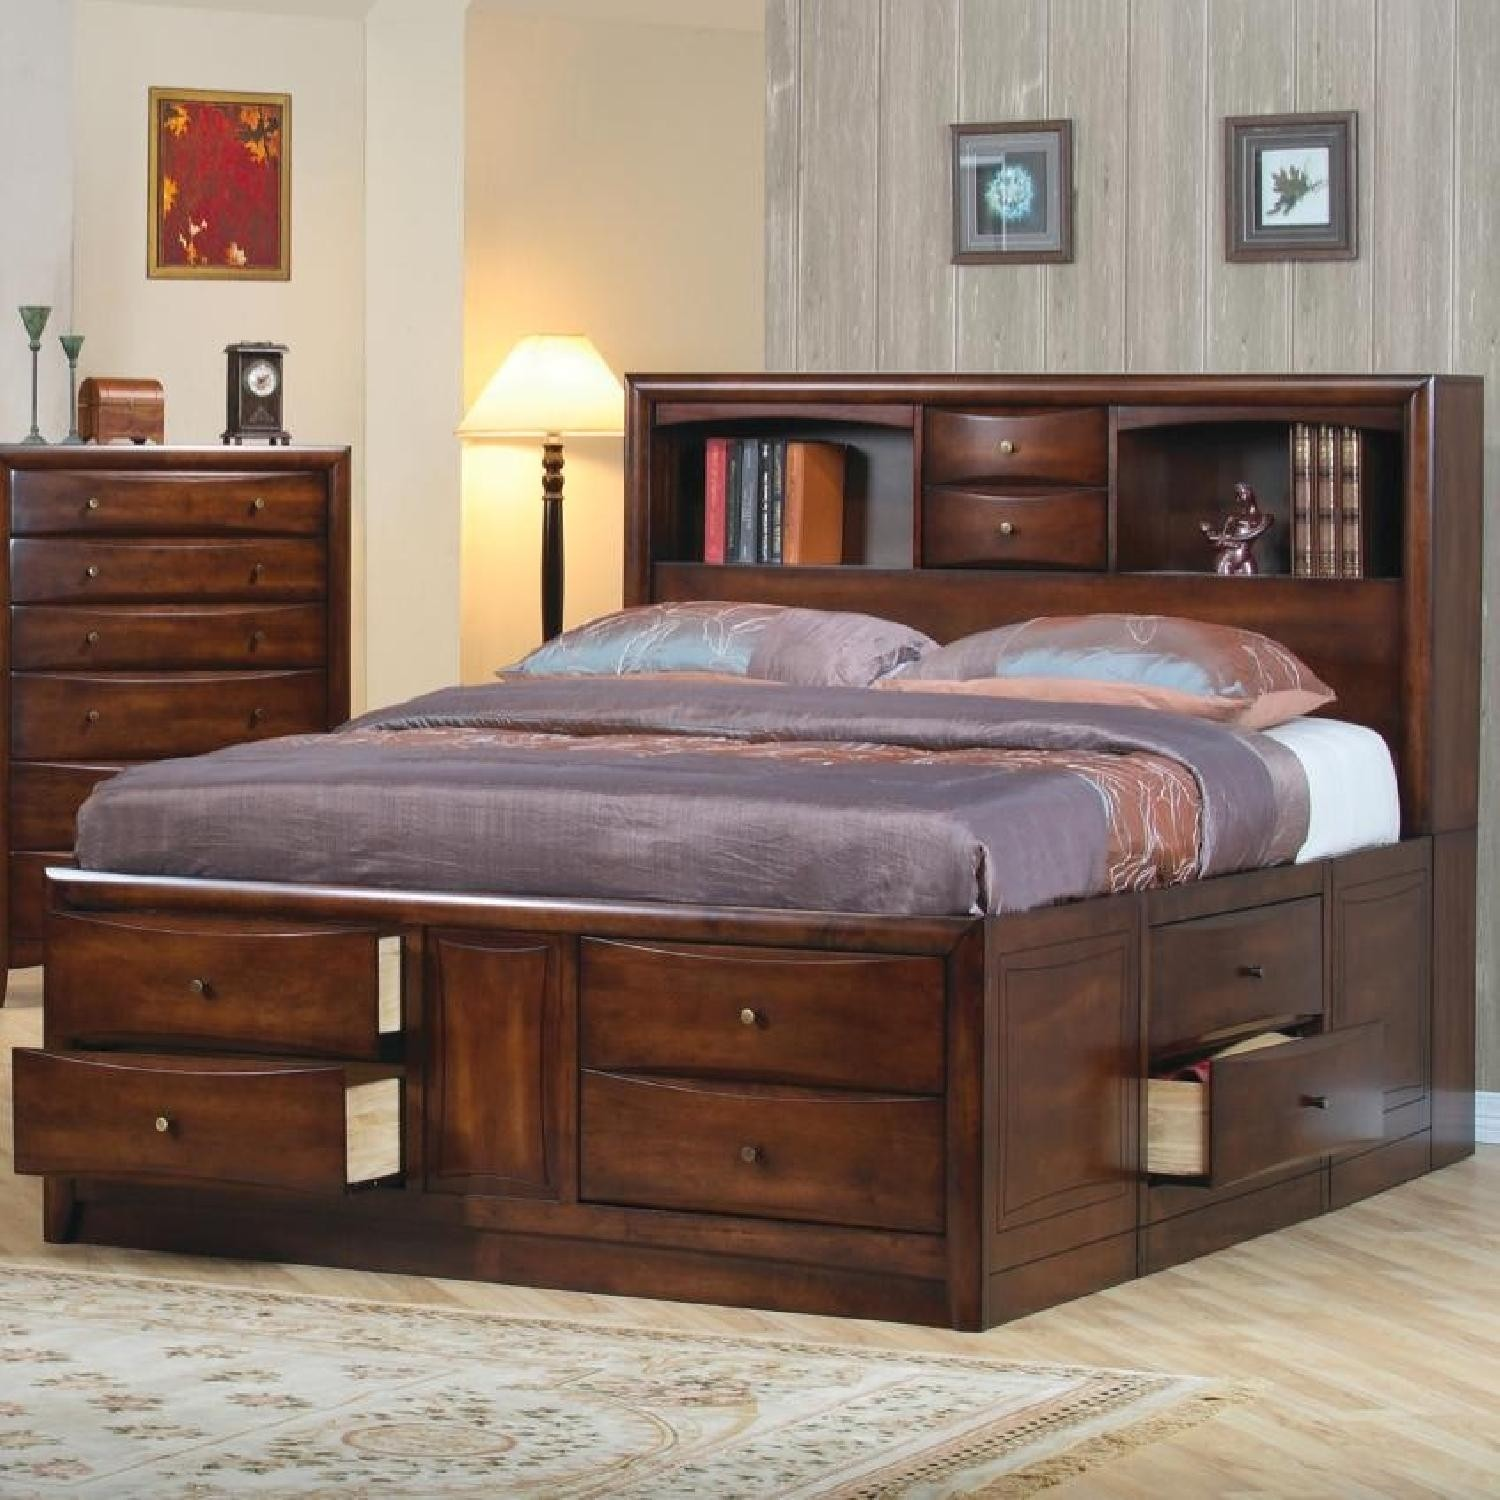 Mason Queen Captains Bed / Storage Chest Bed - Coaster 200609Q & Captains Bed With Storage Drawers - Foter